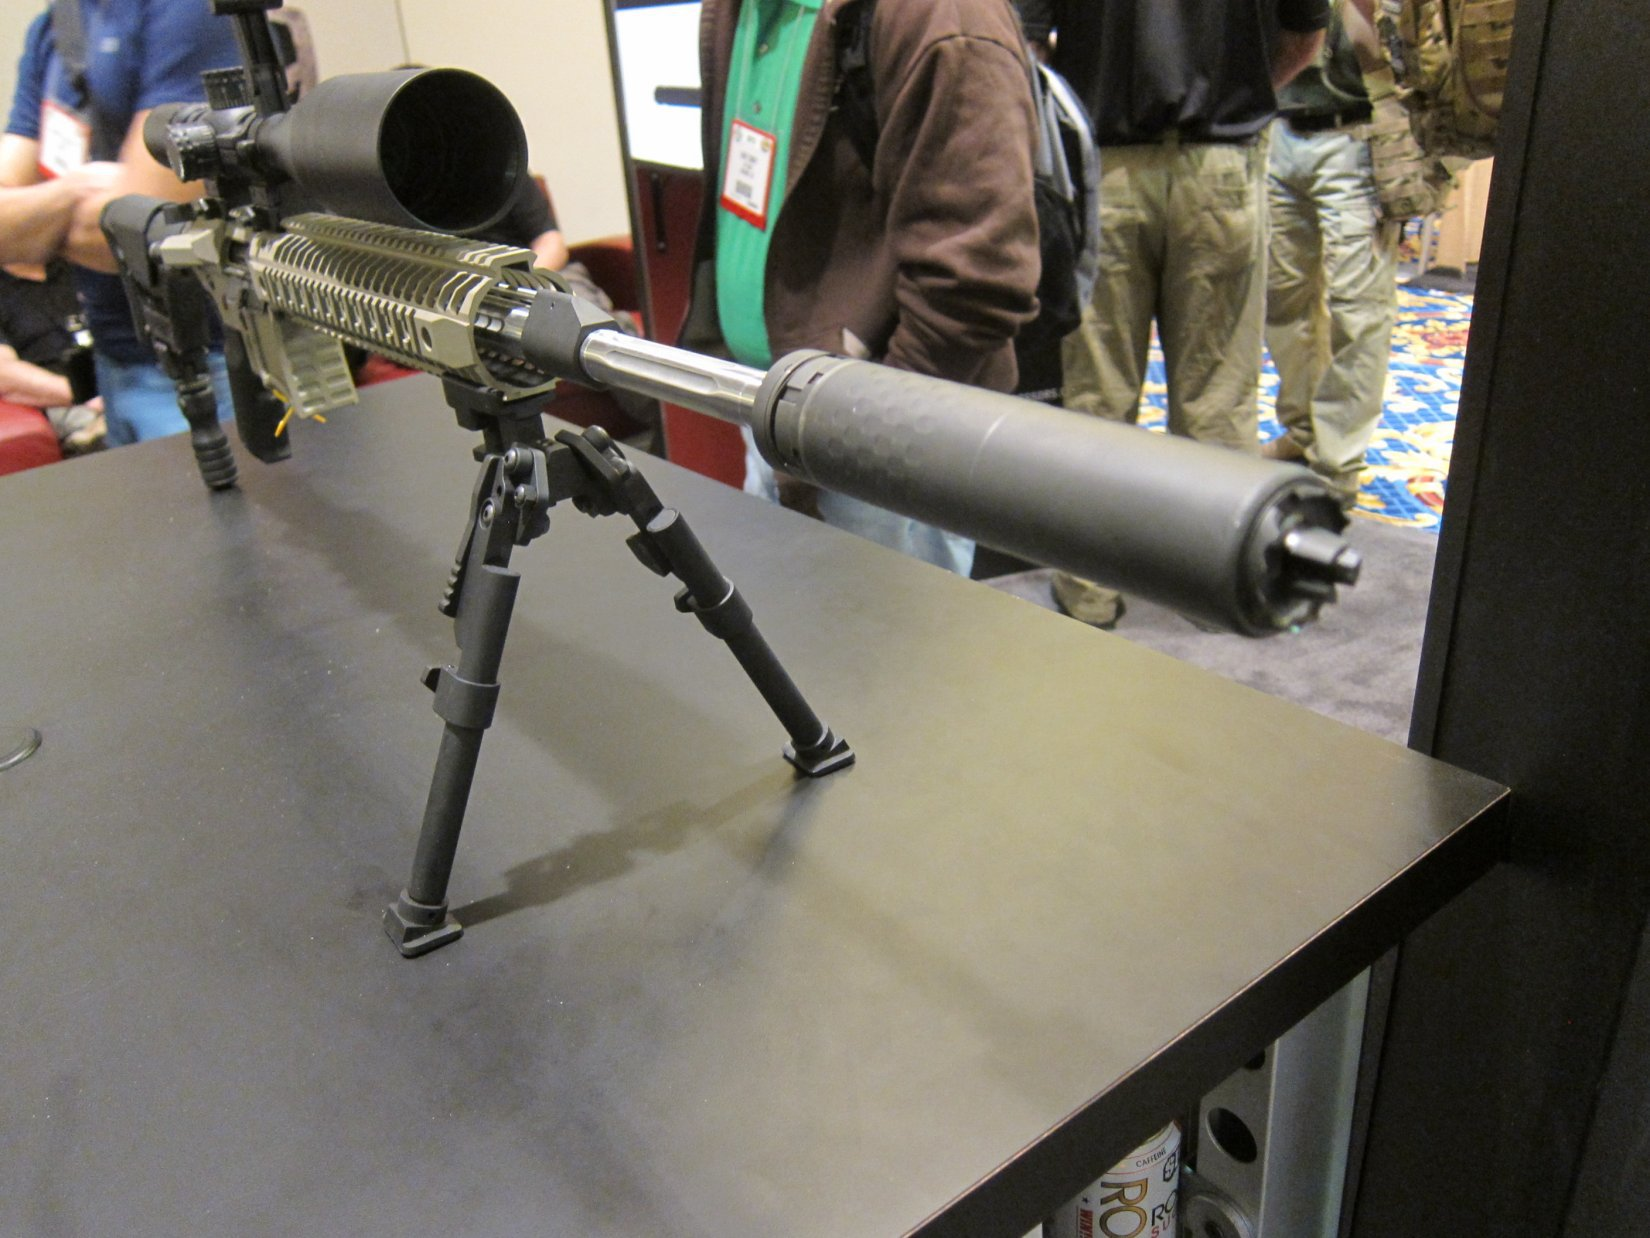 Silencerco Saker 5.56 Modular/Universal 5.56mm Rifle Silencer/Sound Suppressor with Trifecta Fast-Attach Mount and Trifecta RS Flash Hider/Suppressor at SHOT Show 2012: Most Innovative and Modular 5.56mm Muzzle Can Ever? (Video!)